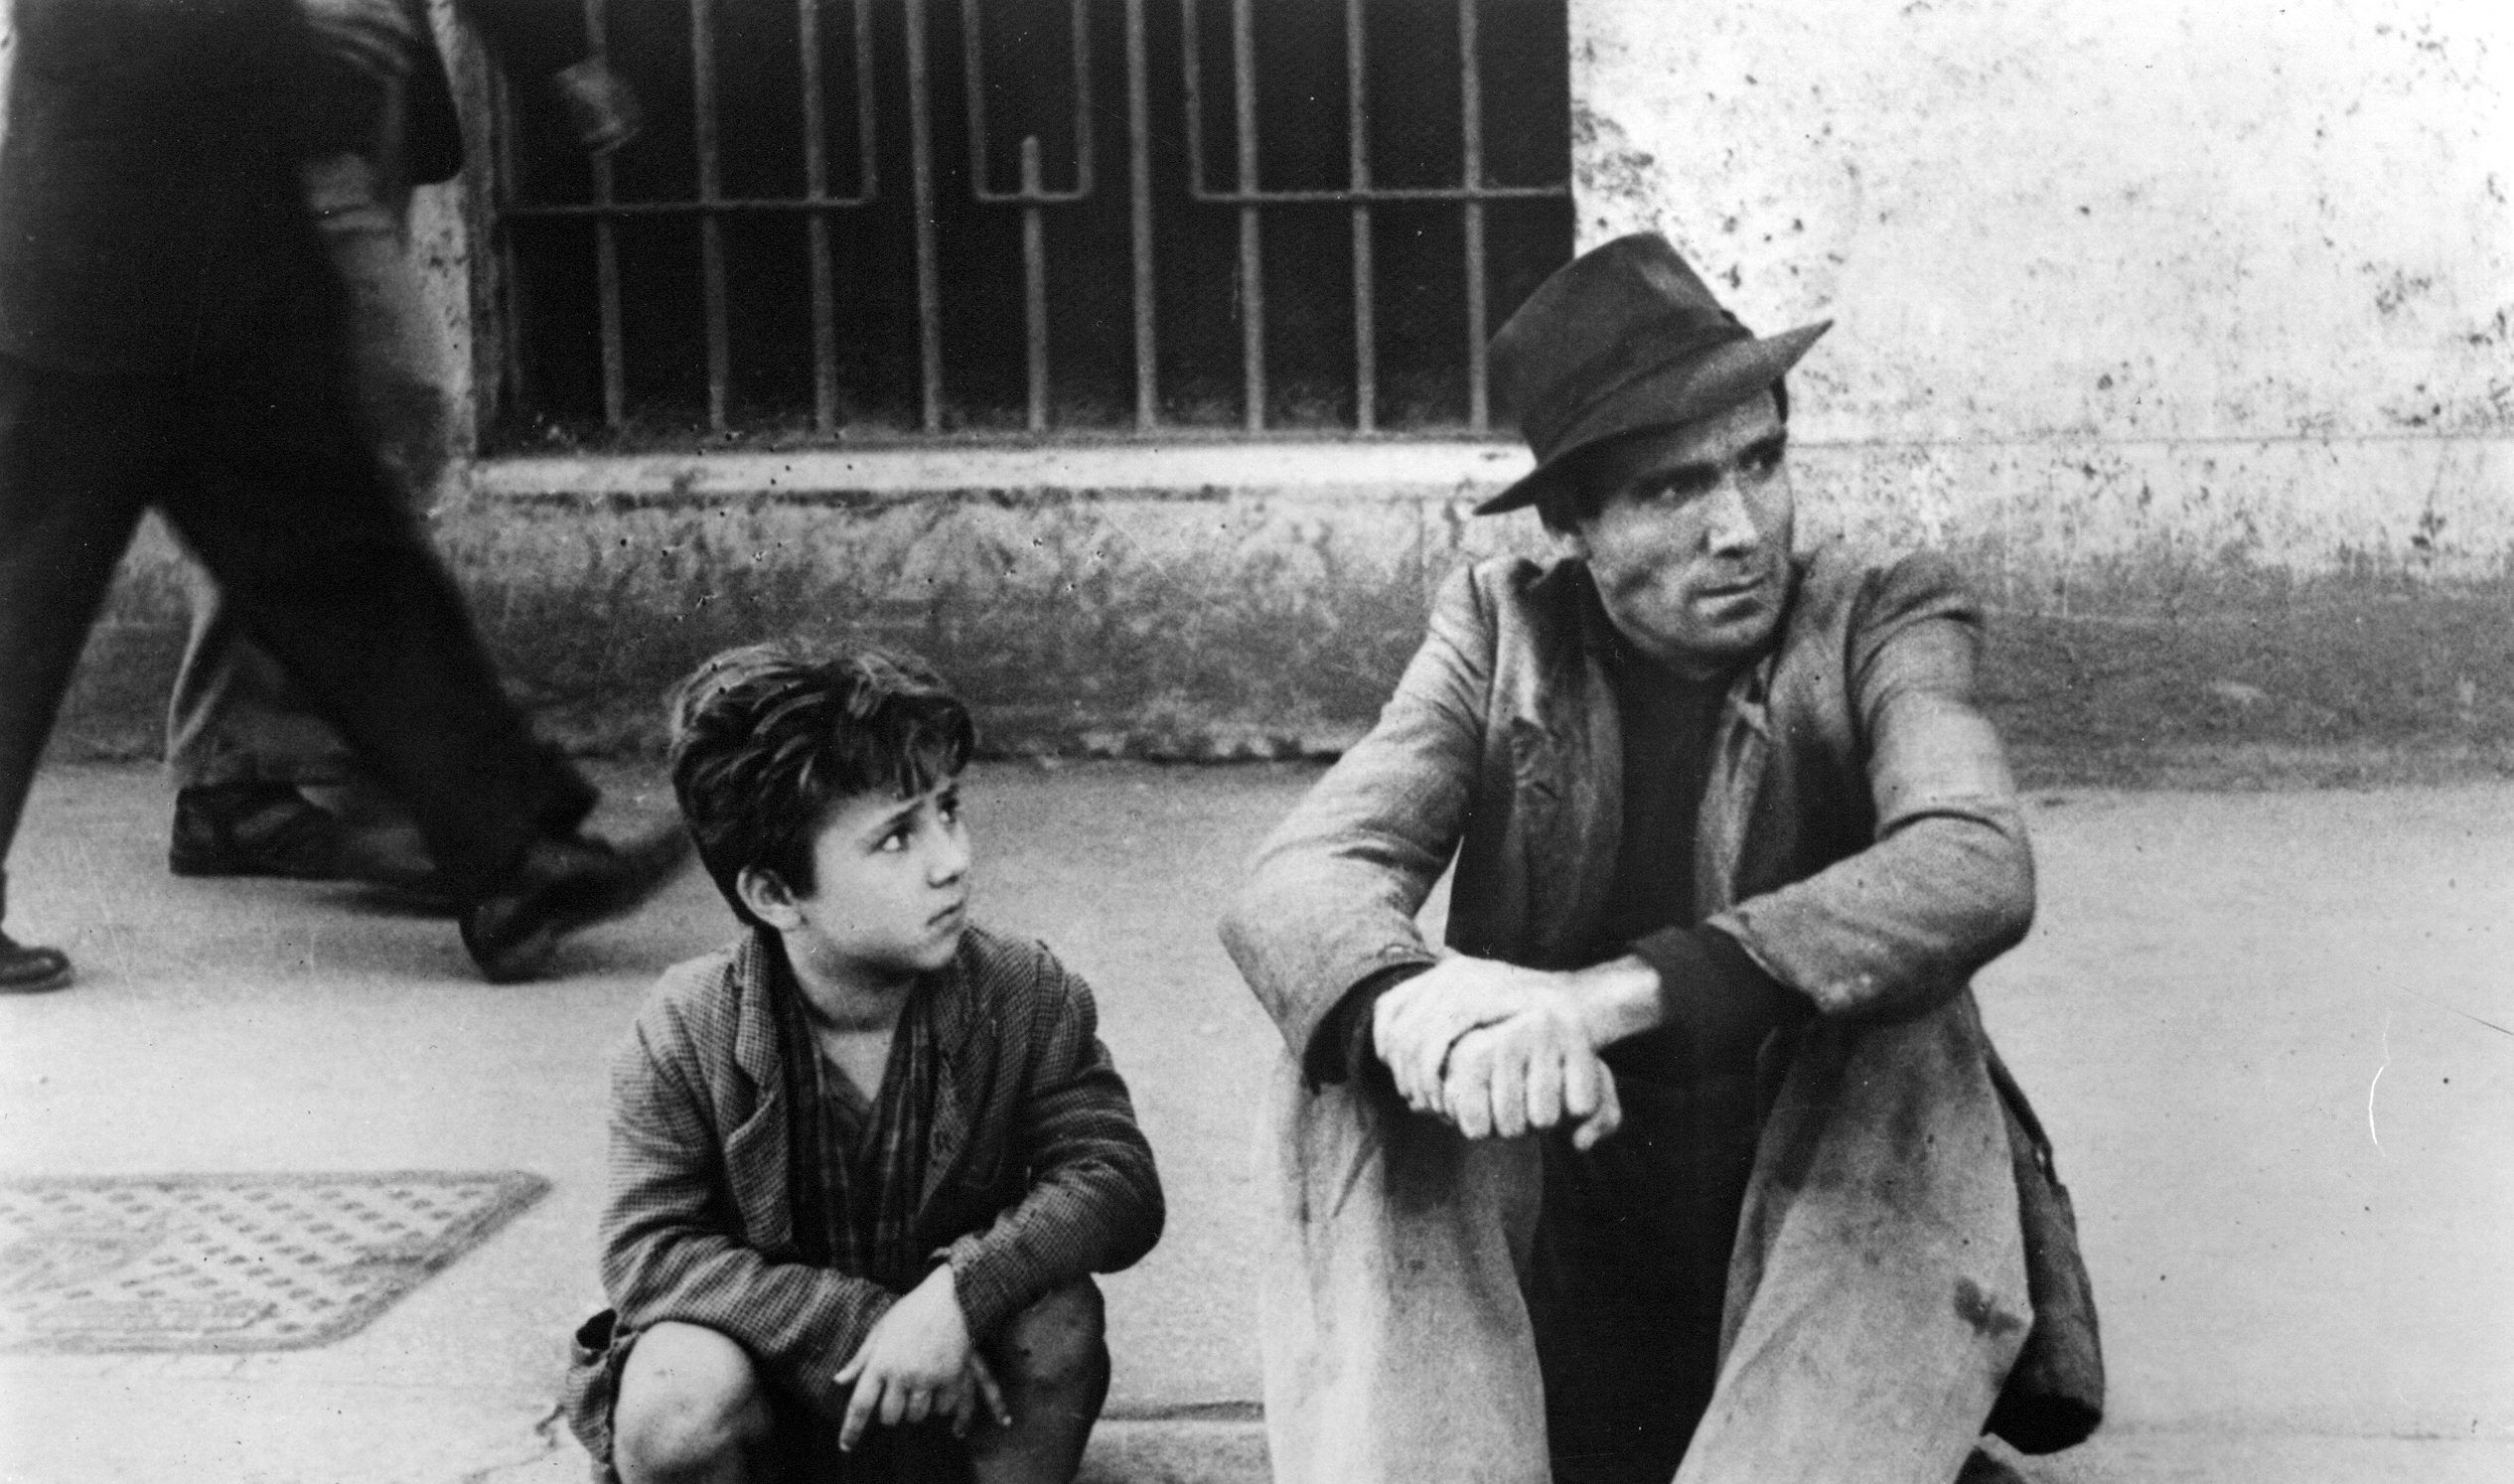 Nov 24, 1948 Bicycle Thieves was released (With images